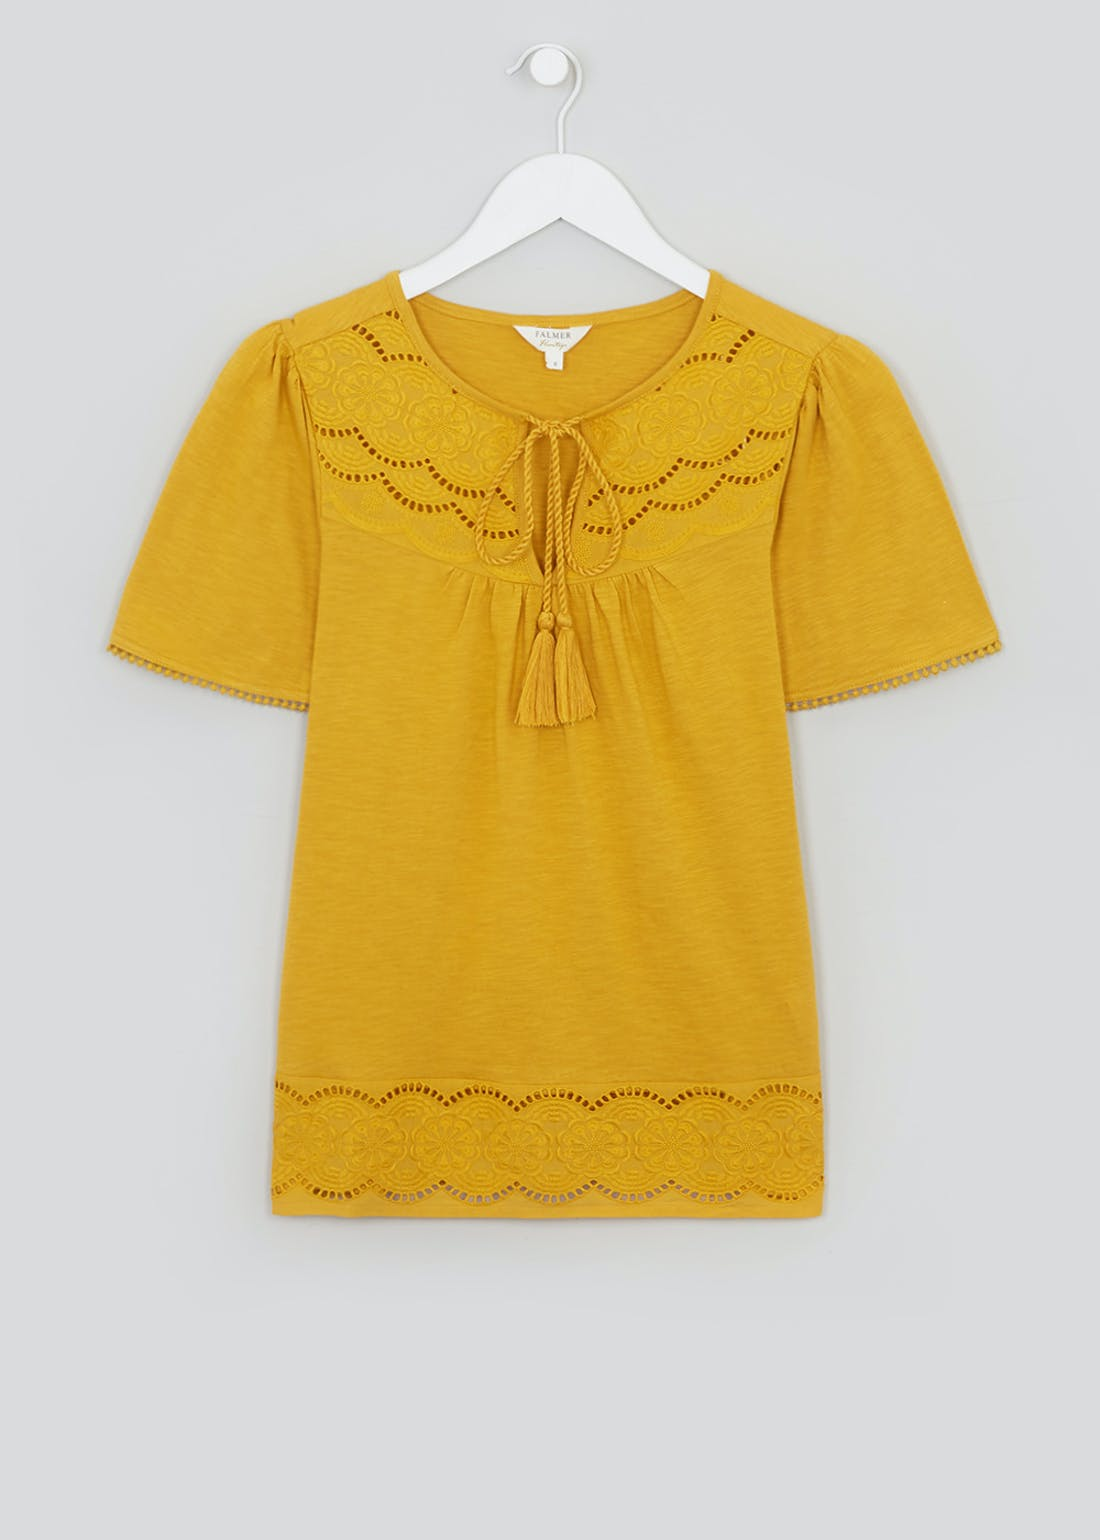 Falmer Yellow Short Sleeve Embroidered Top